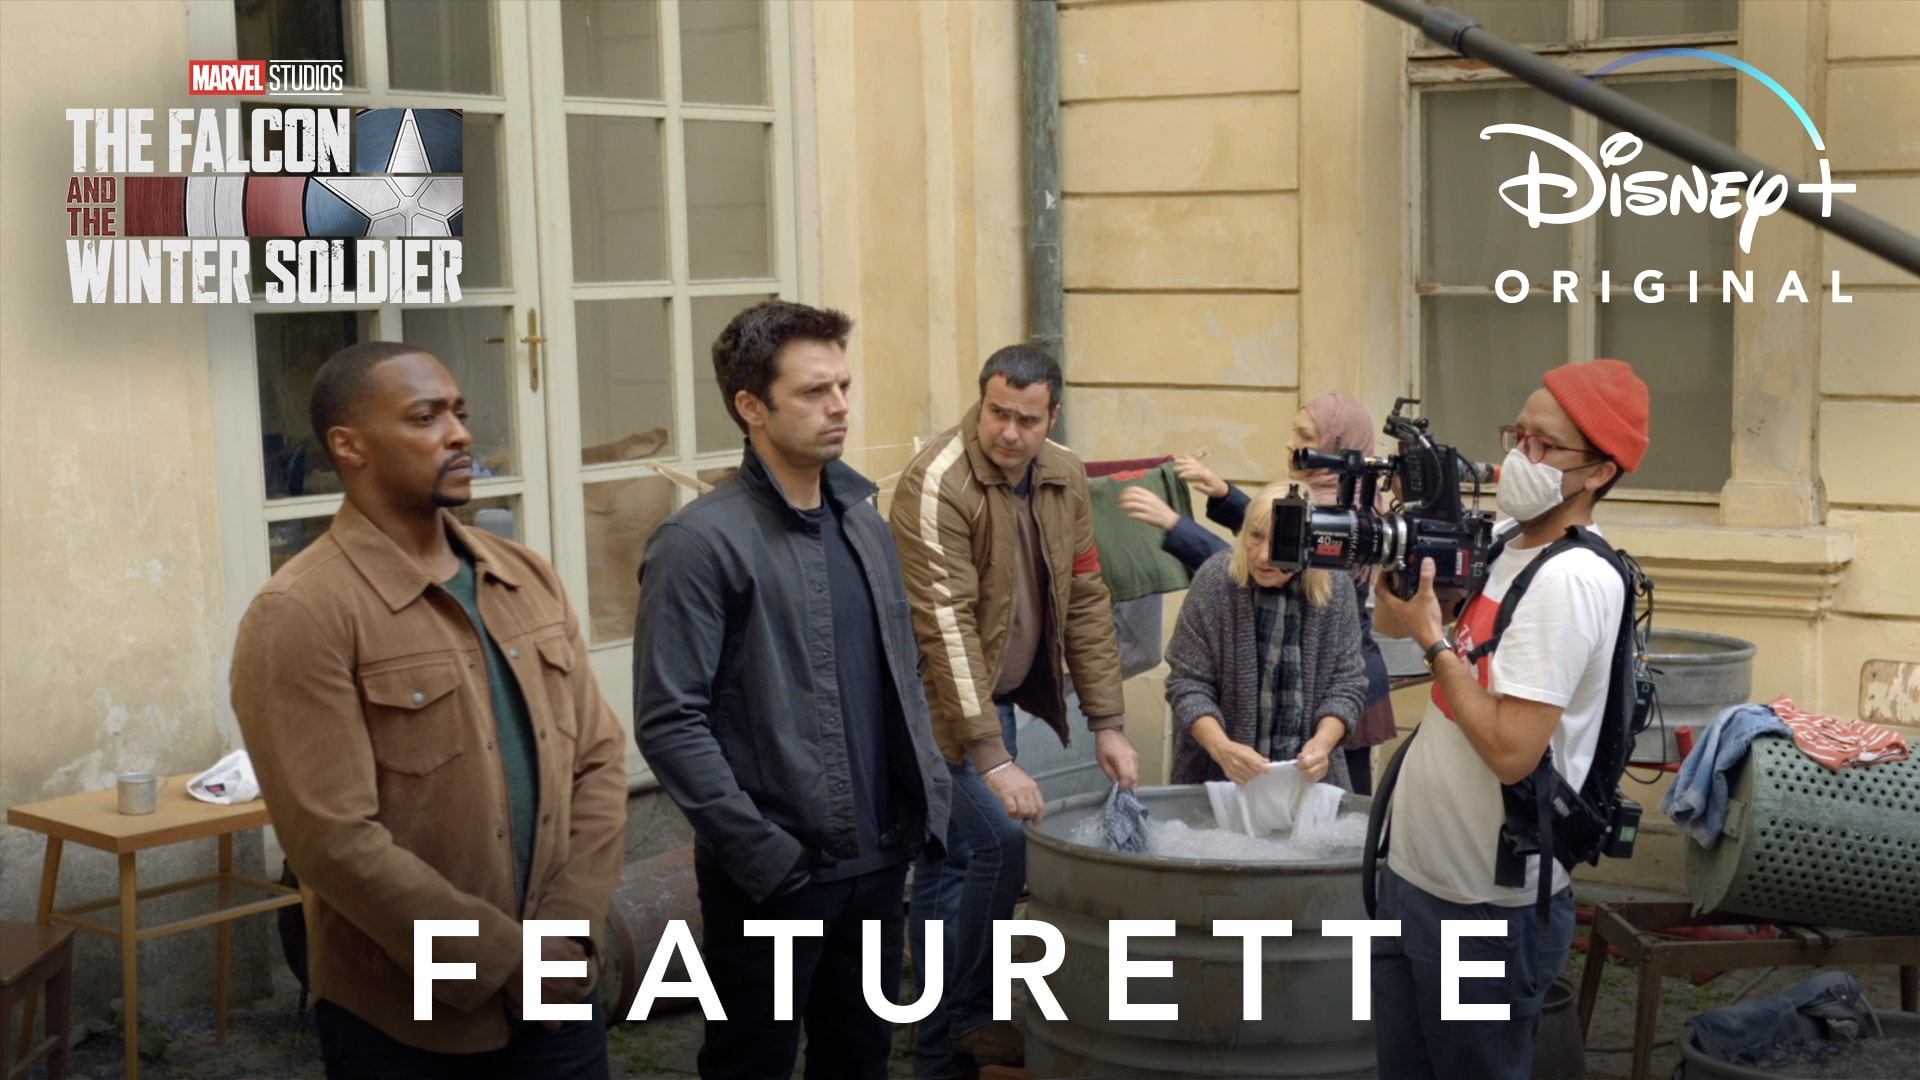 Co-workers Featurette | The Falcon and the Winter Soldier | Disney+